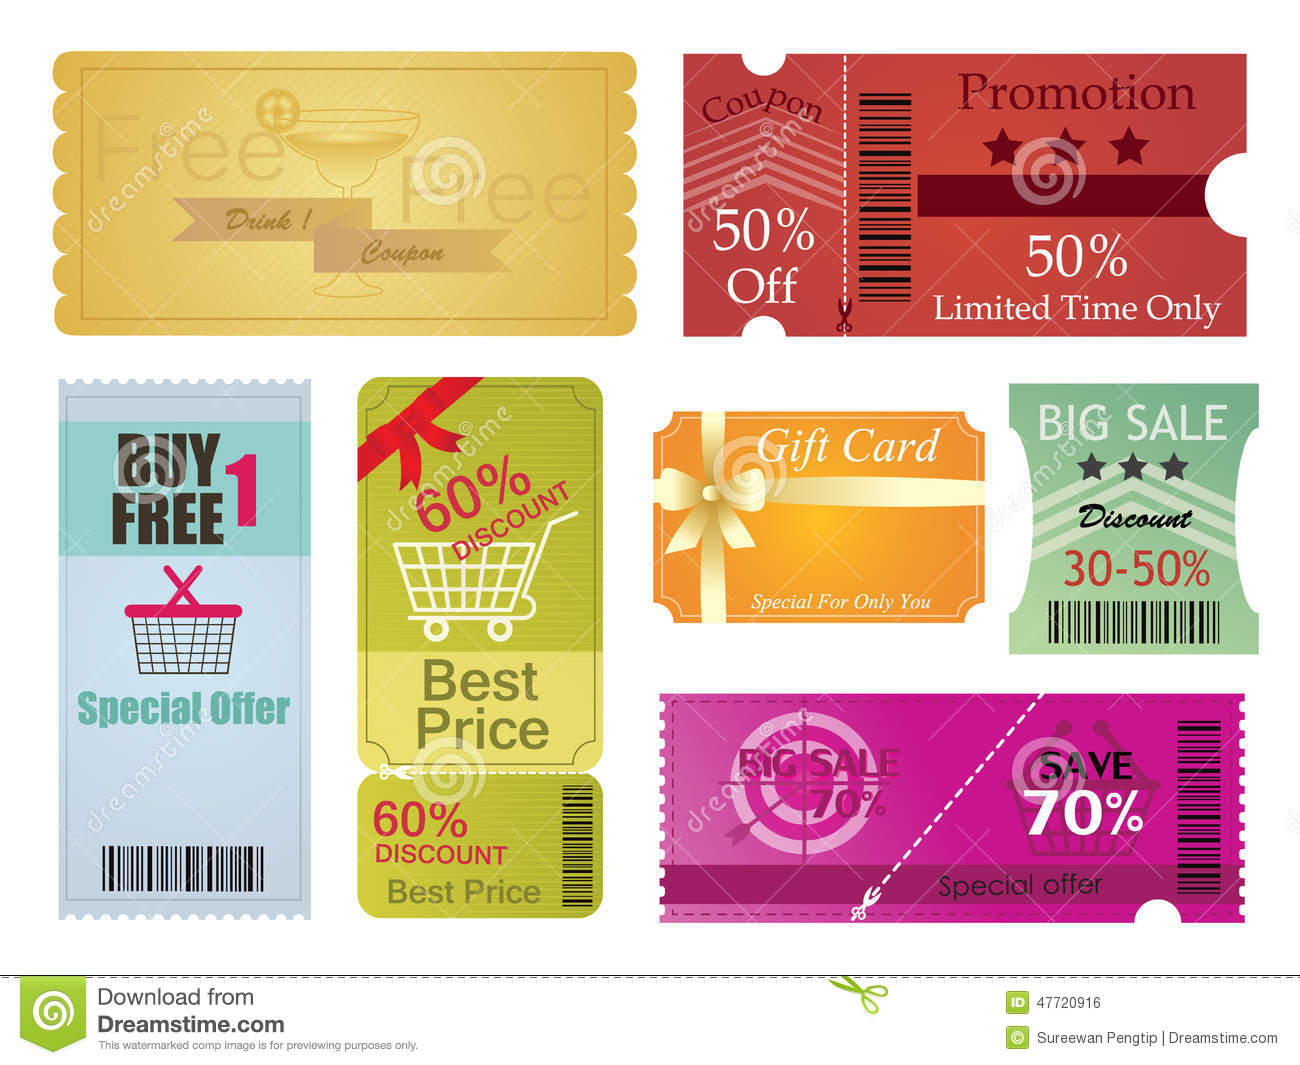 Doc585395 Coupons Design Templates Sample Coupon Template 27 – Coupons Design Templates